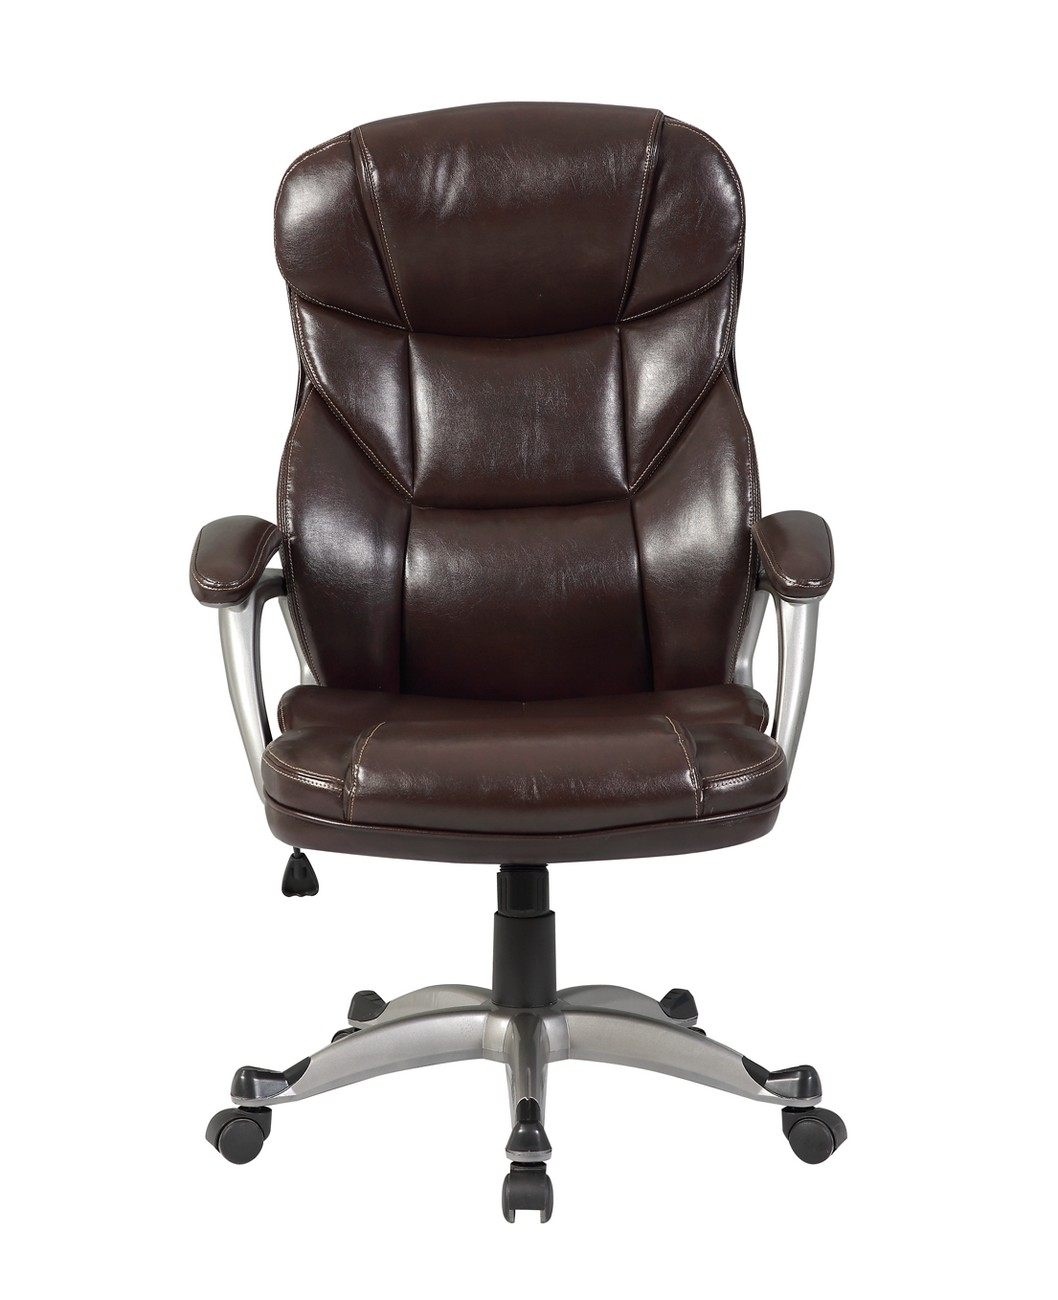 pu leather office chair egg restoration hardware executive ergonomic high back desk